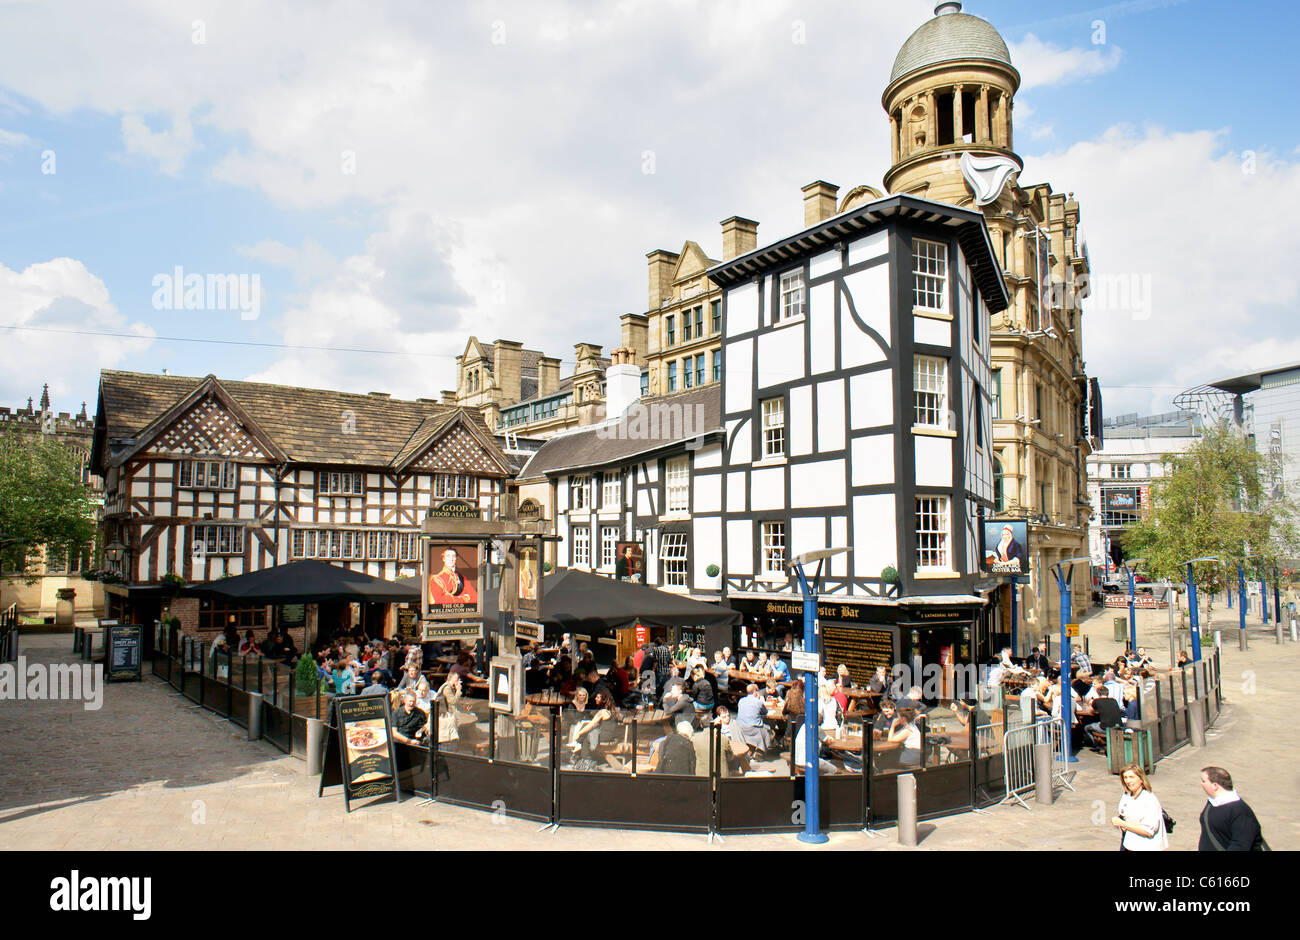 Manchester city centre. The Old Wellington Inn (1552) and Sinclairs Oyster Bar in Shambles Square. Corn Exchange - Stock Image